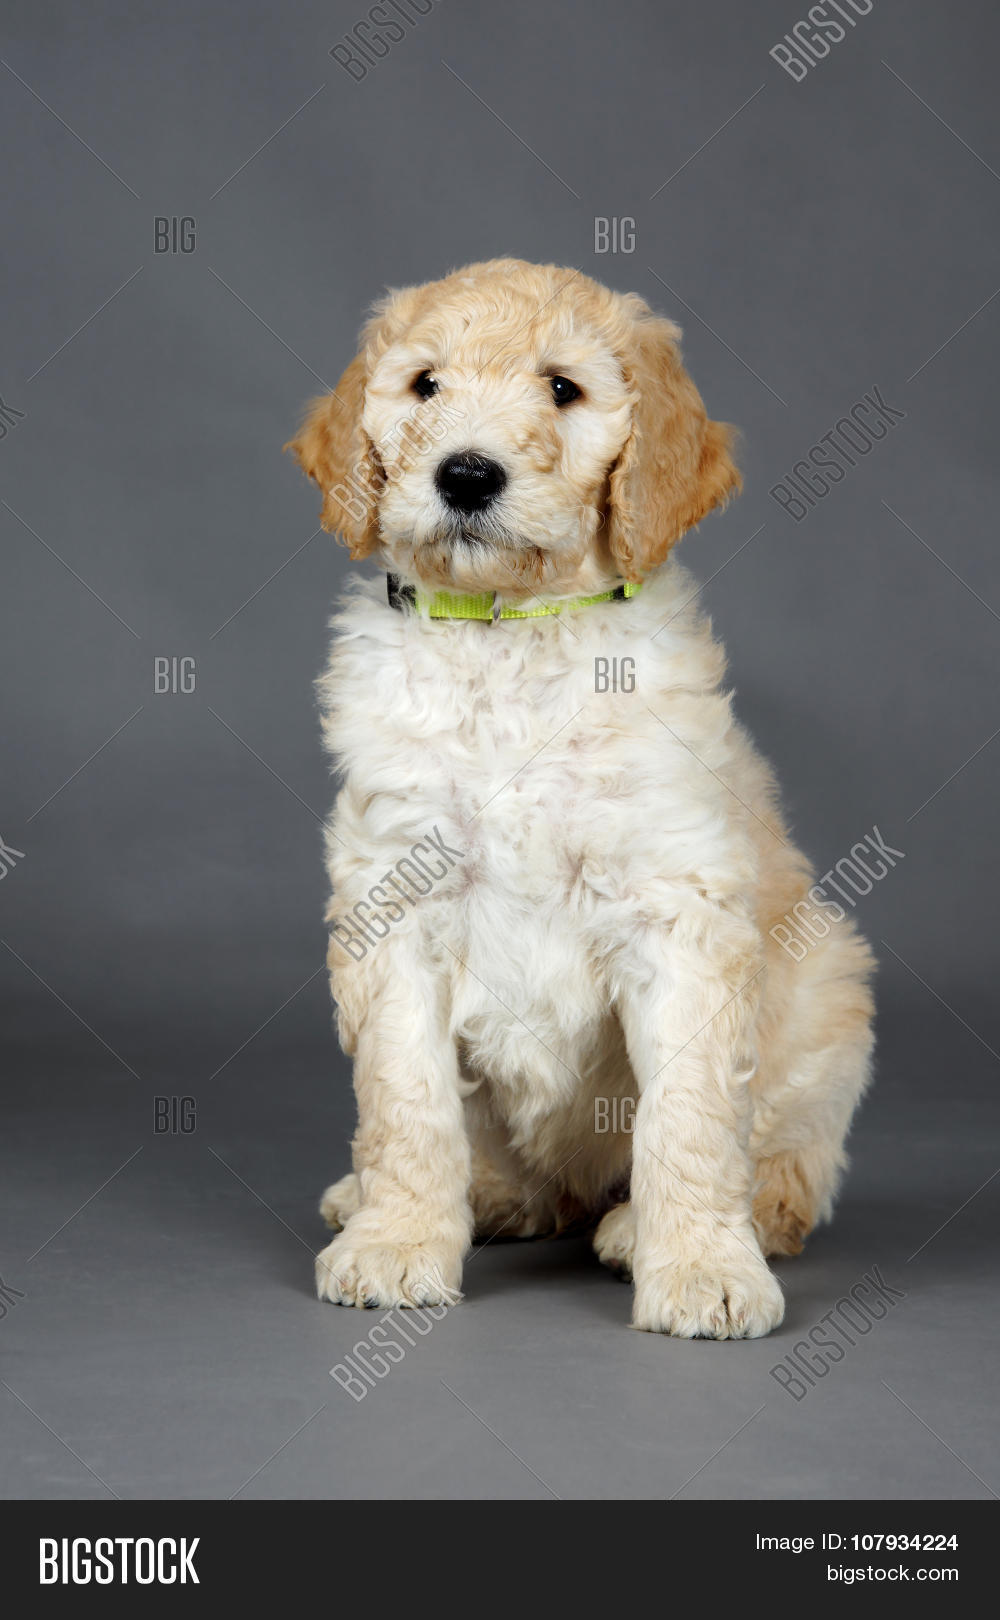 Cute Goldendoodle Pup Image Photo Free Trial Bigstock